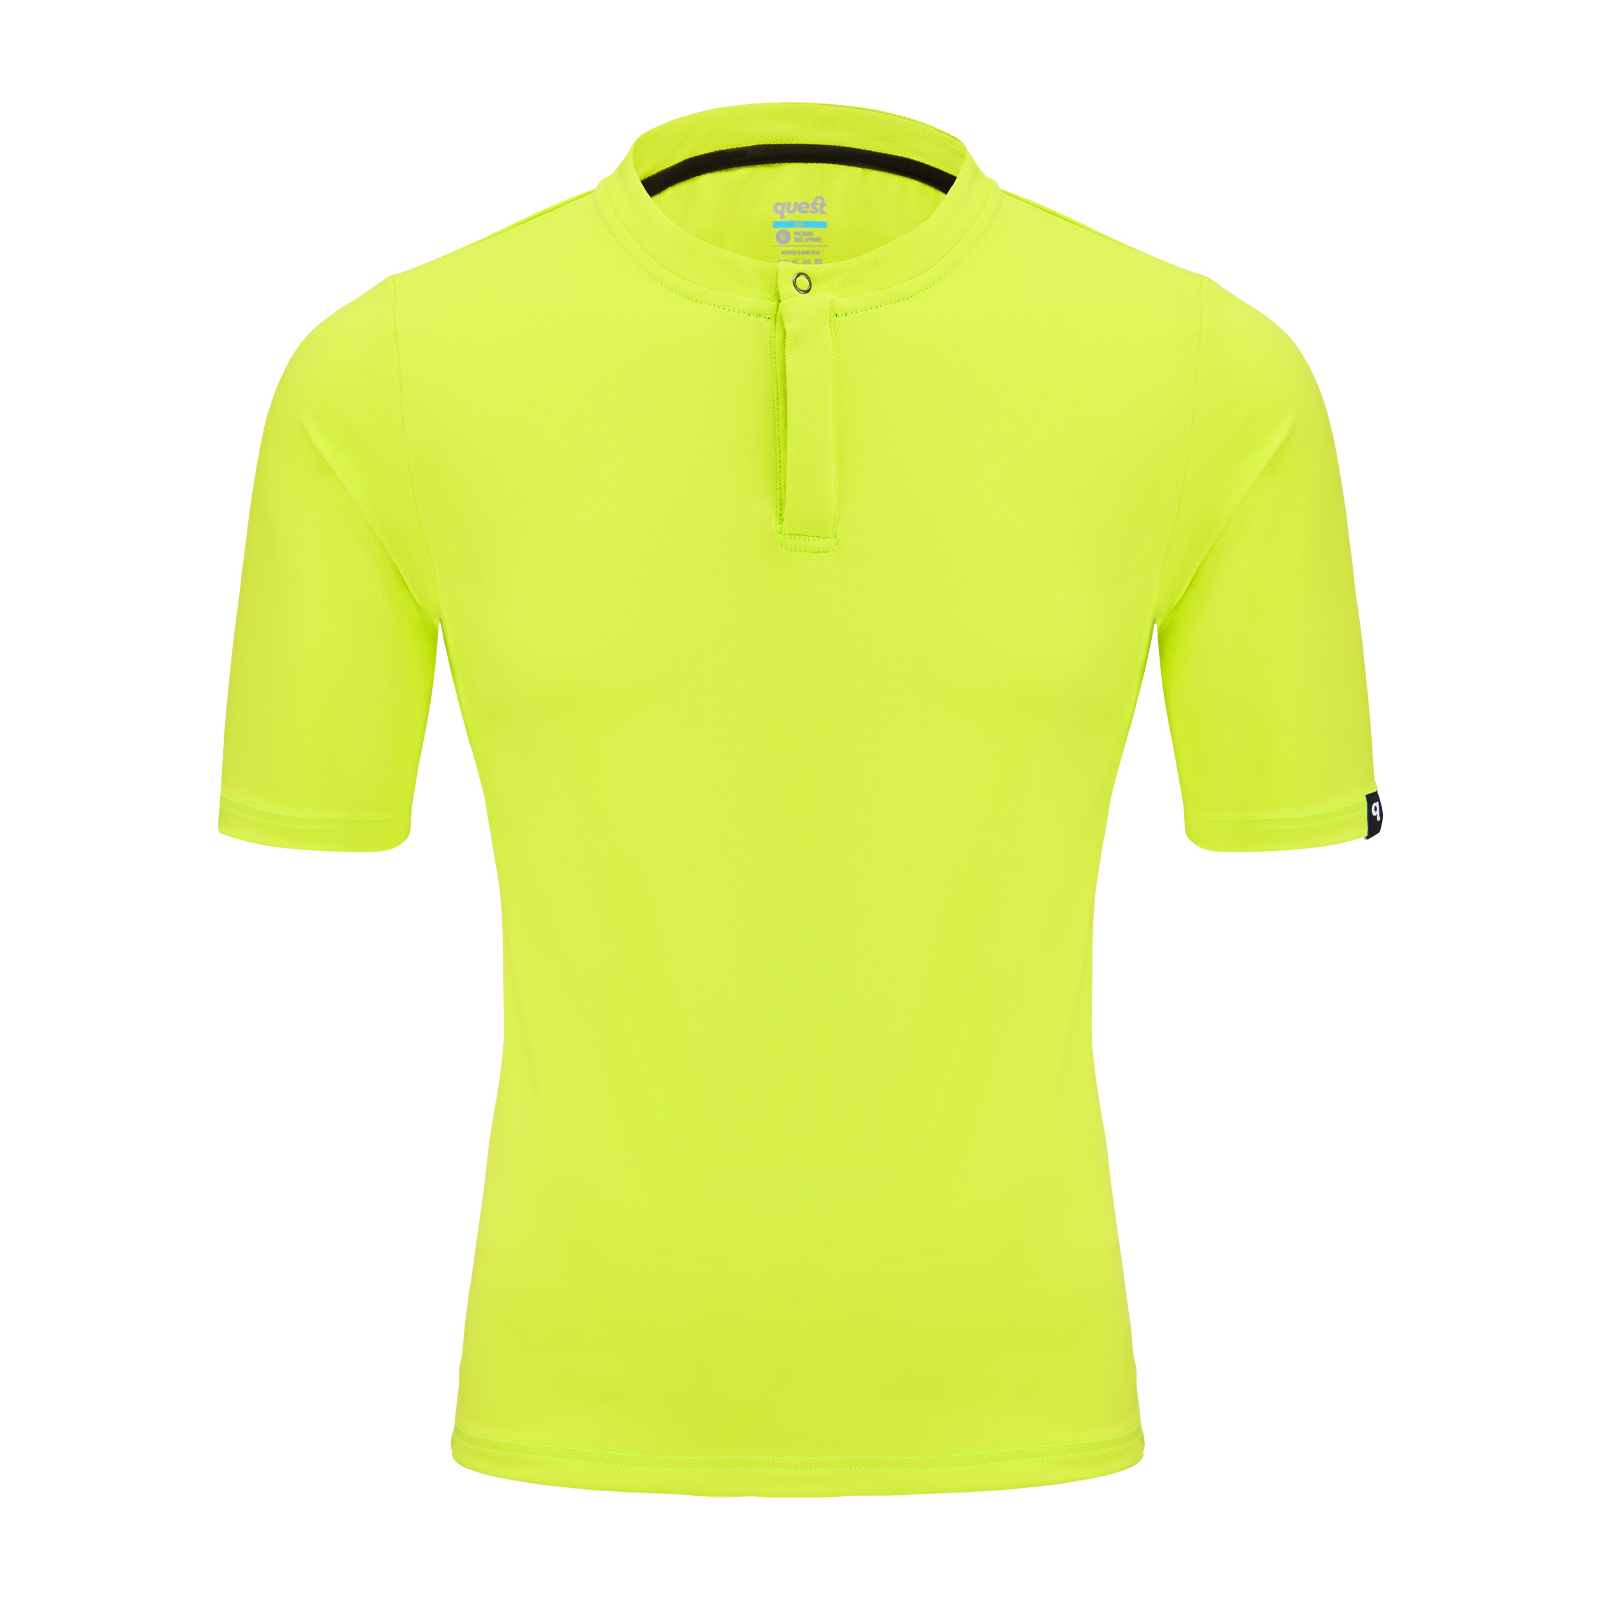 Men's Adventure Jersey - Explore - questsport.shop